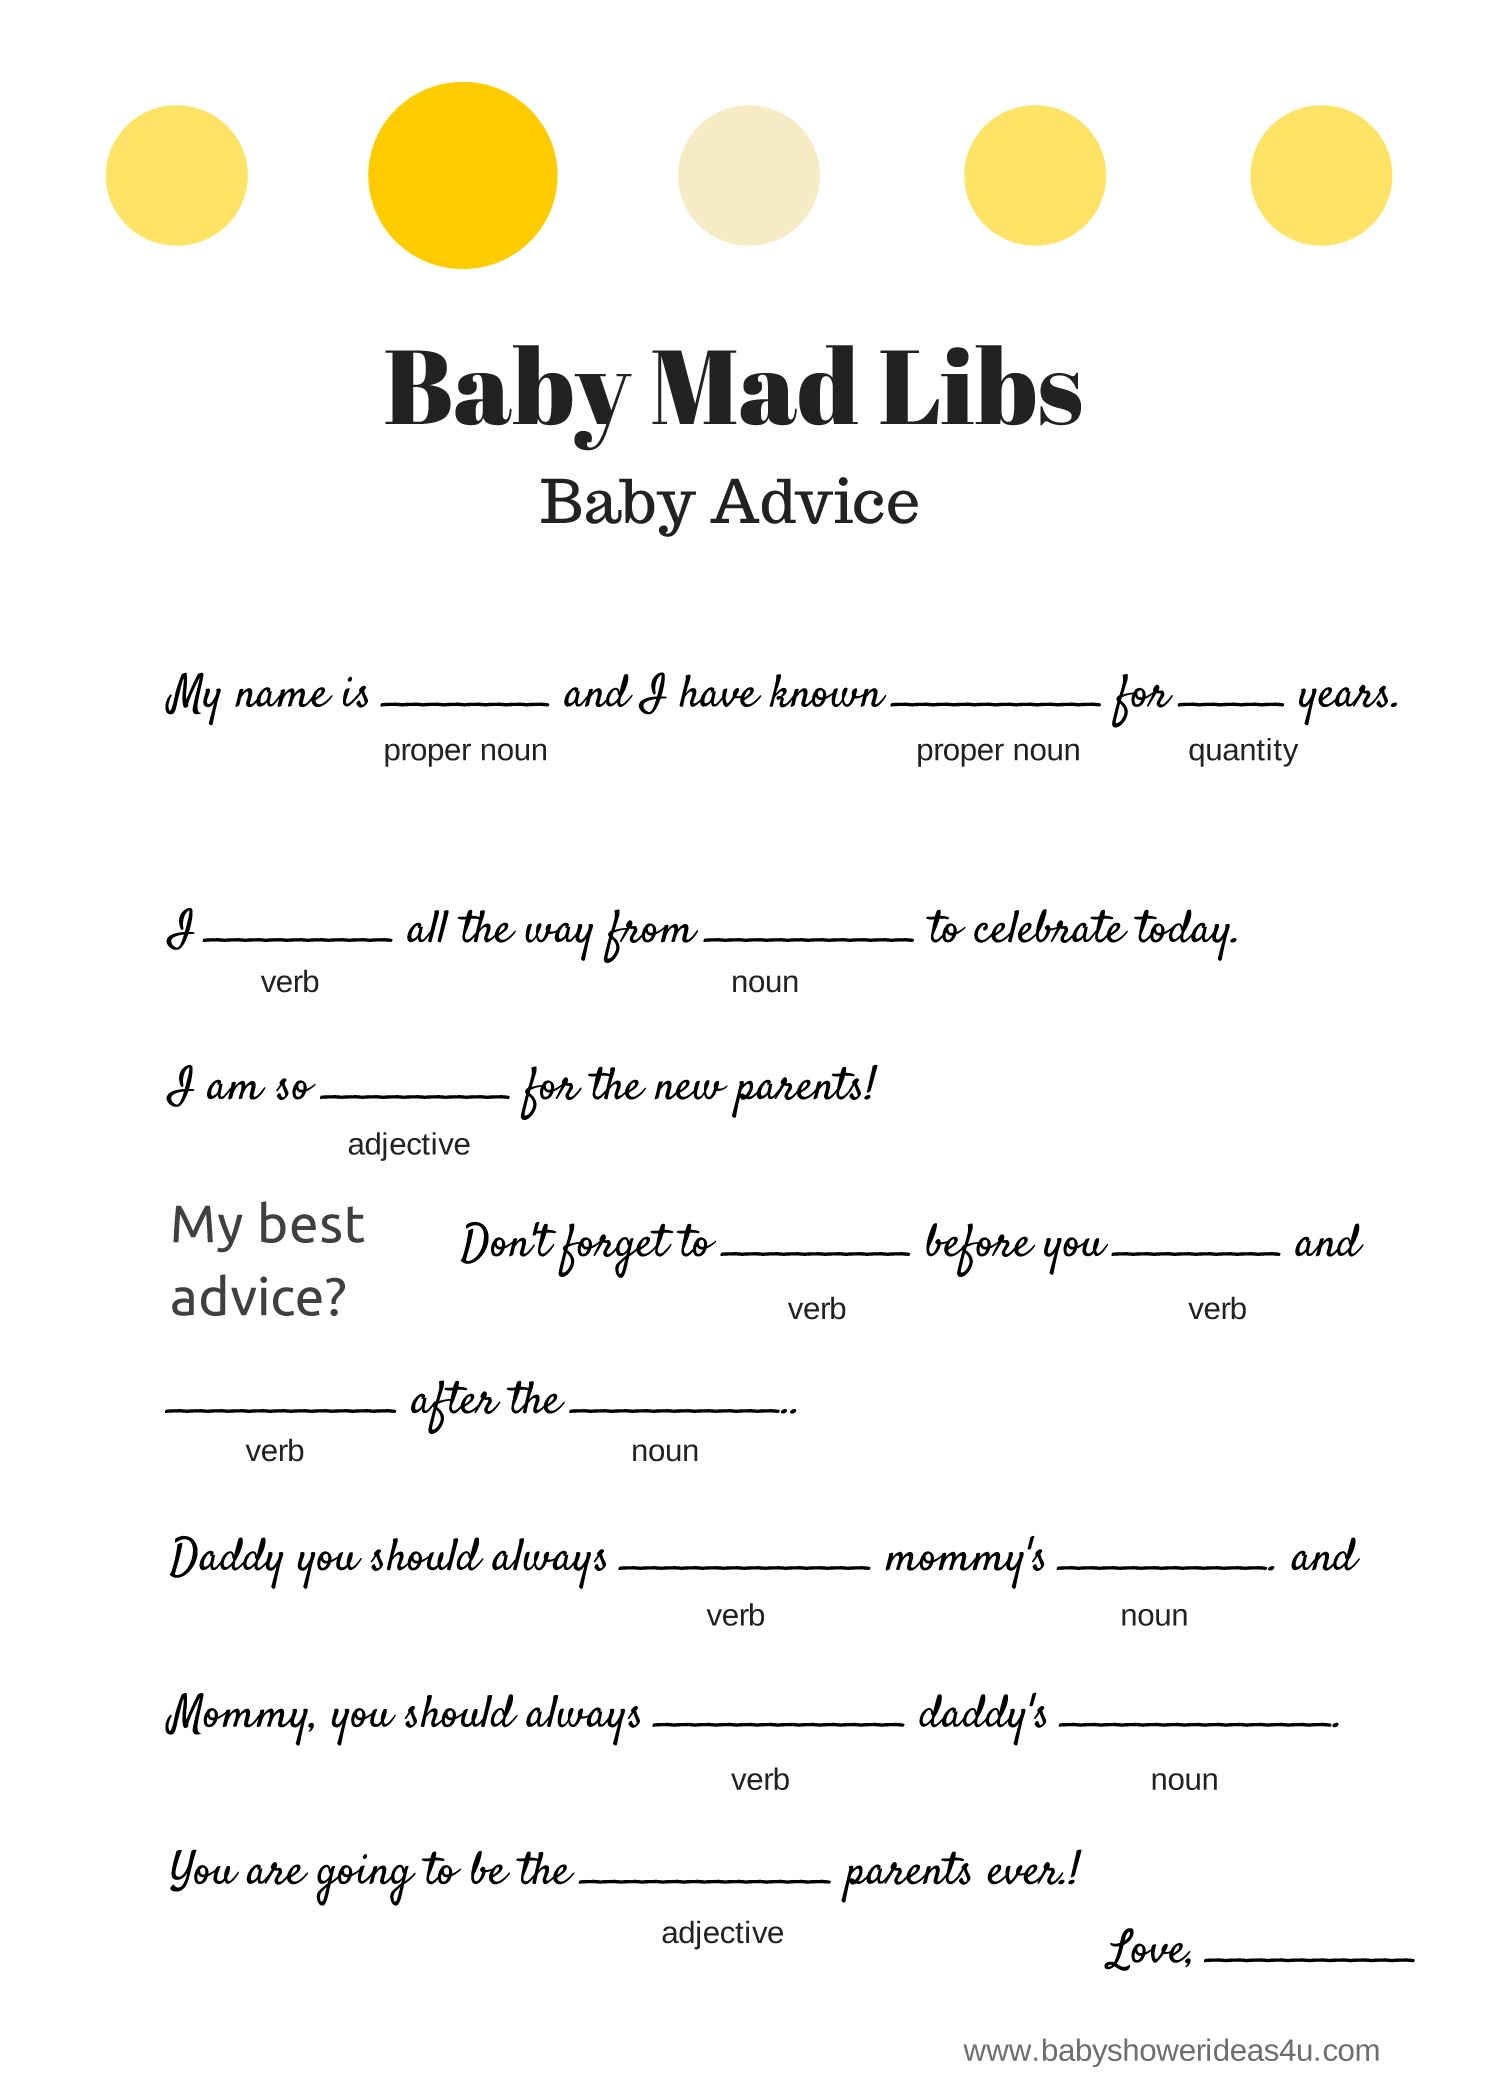 Free Baby Mad Libs Game - Baby Advice - Baby Shower Ideas - Themes - Mad Libs Online Printable Free